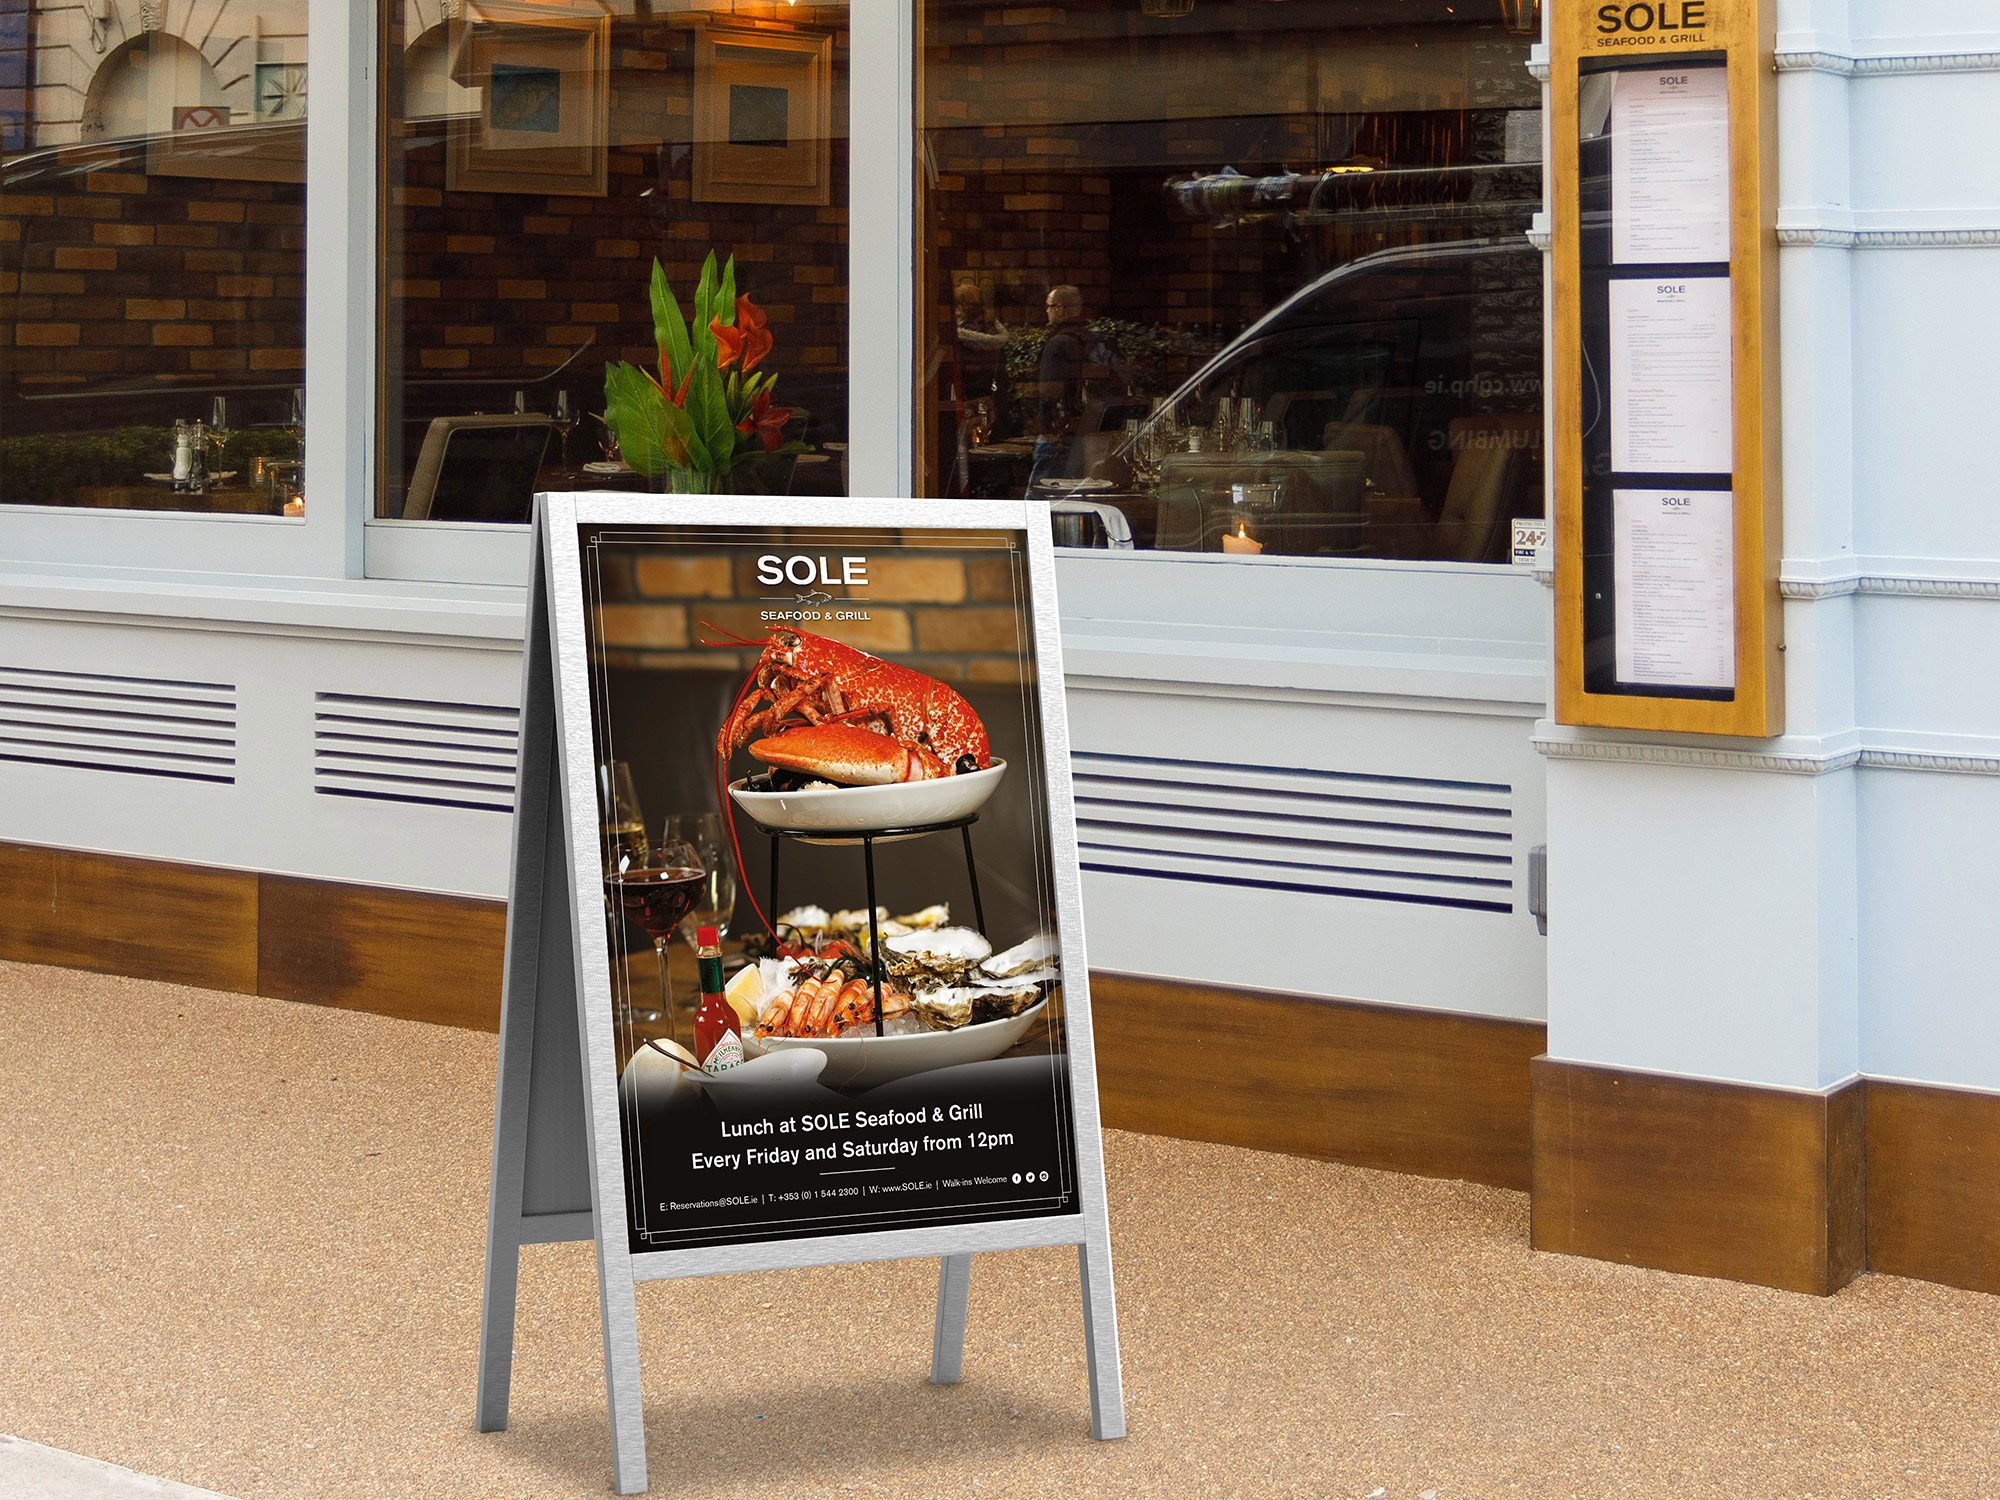 sole-lunch-poster_mock-up-2000x1500.jpg